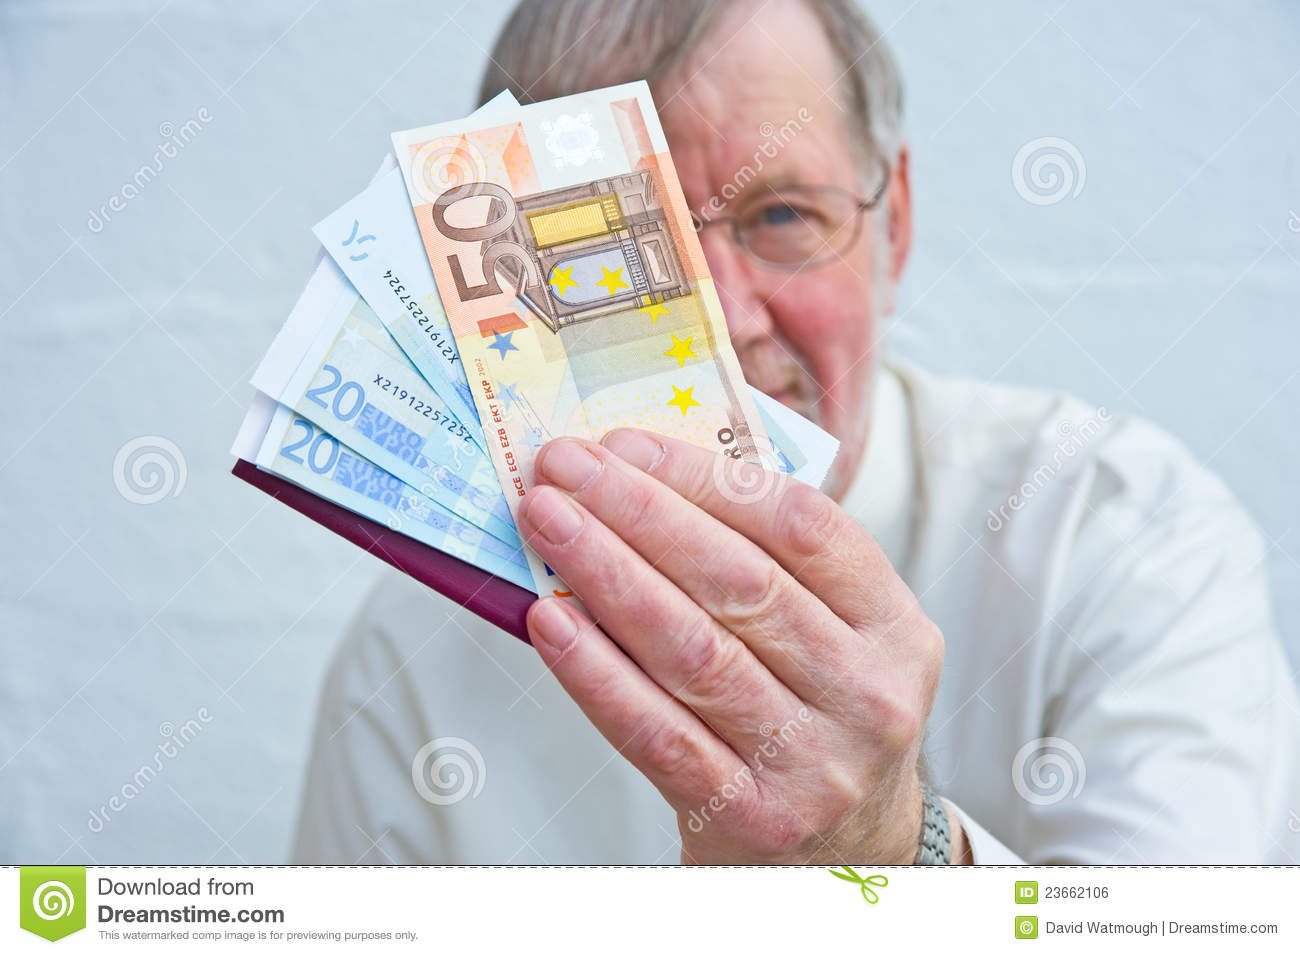 Offer to pay in Euros.